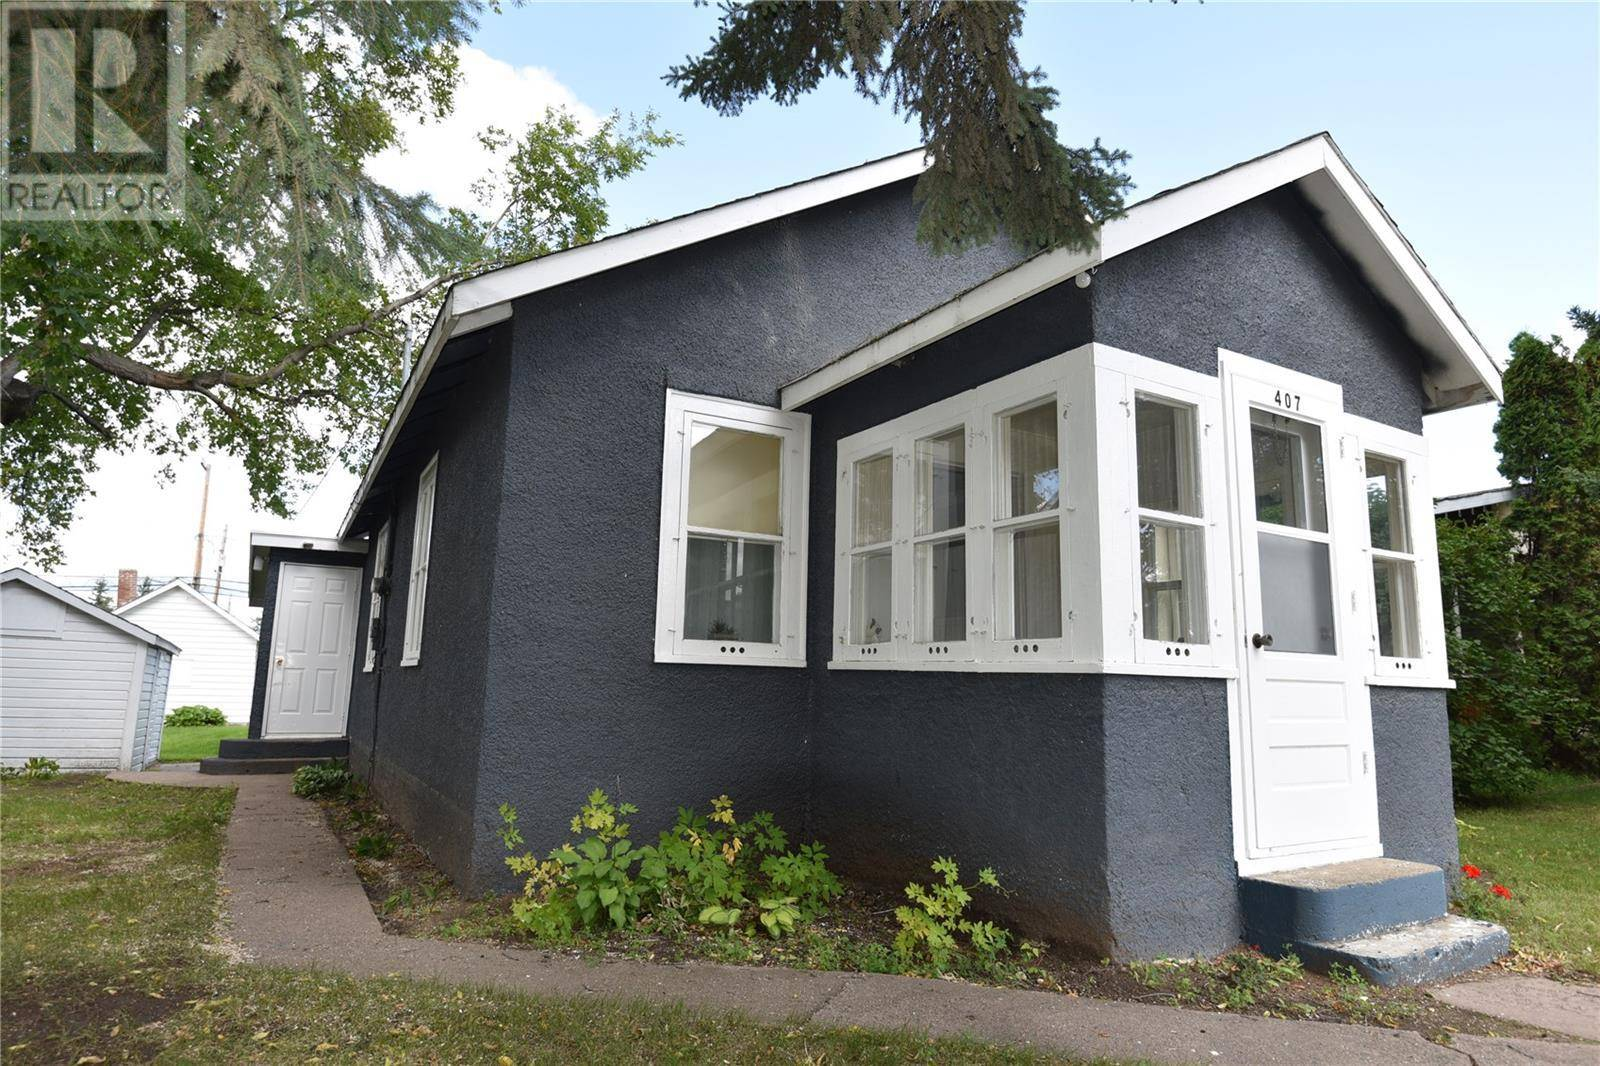 House for sale at 407 Nipawin Rd E Nipawin Rm No. 487 Saskatchewan - MLS: SK783023